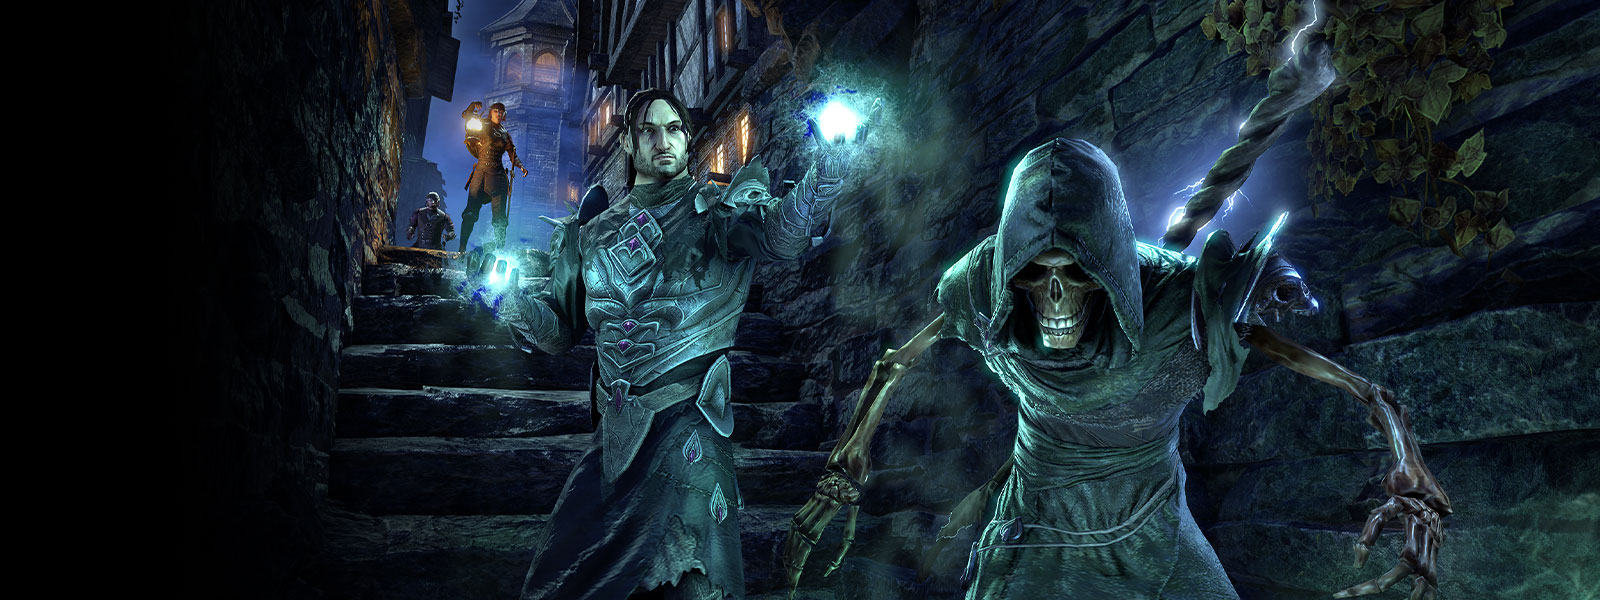 Skeleton glowing blue with hood with a man in armour and glowing blue orbs in his hands in an alley